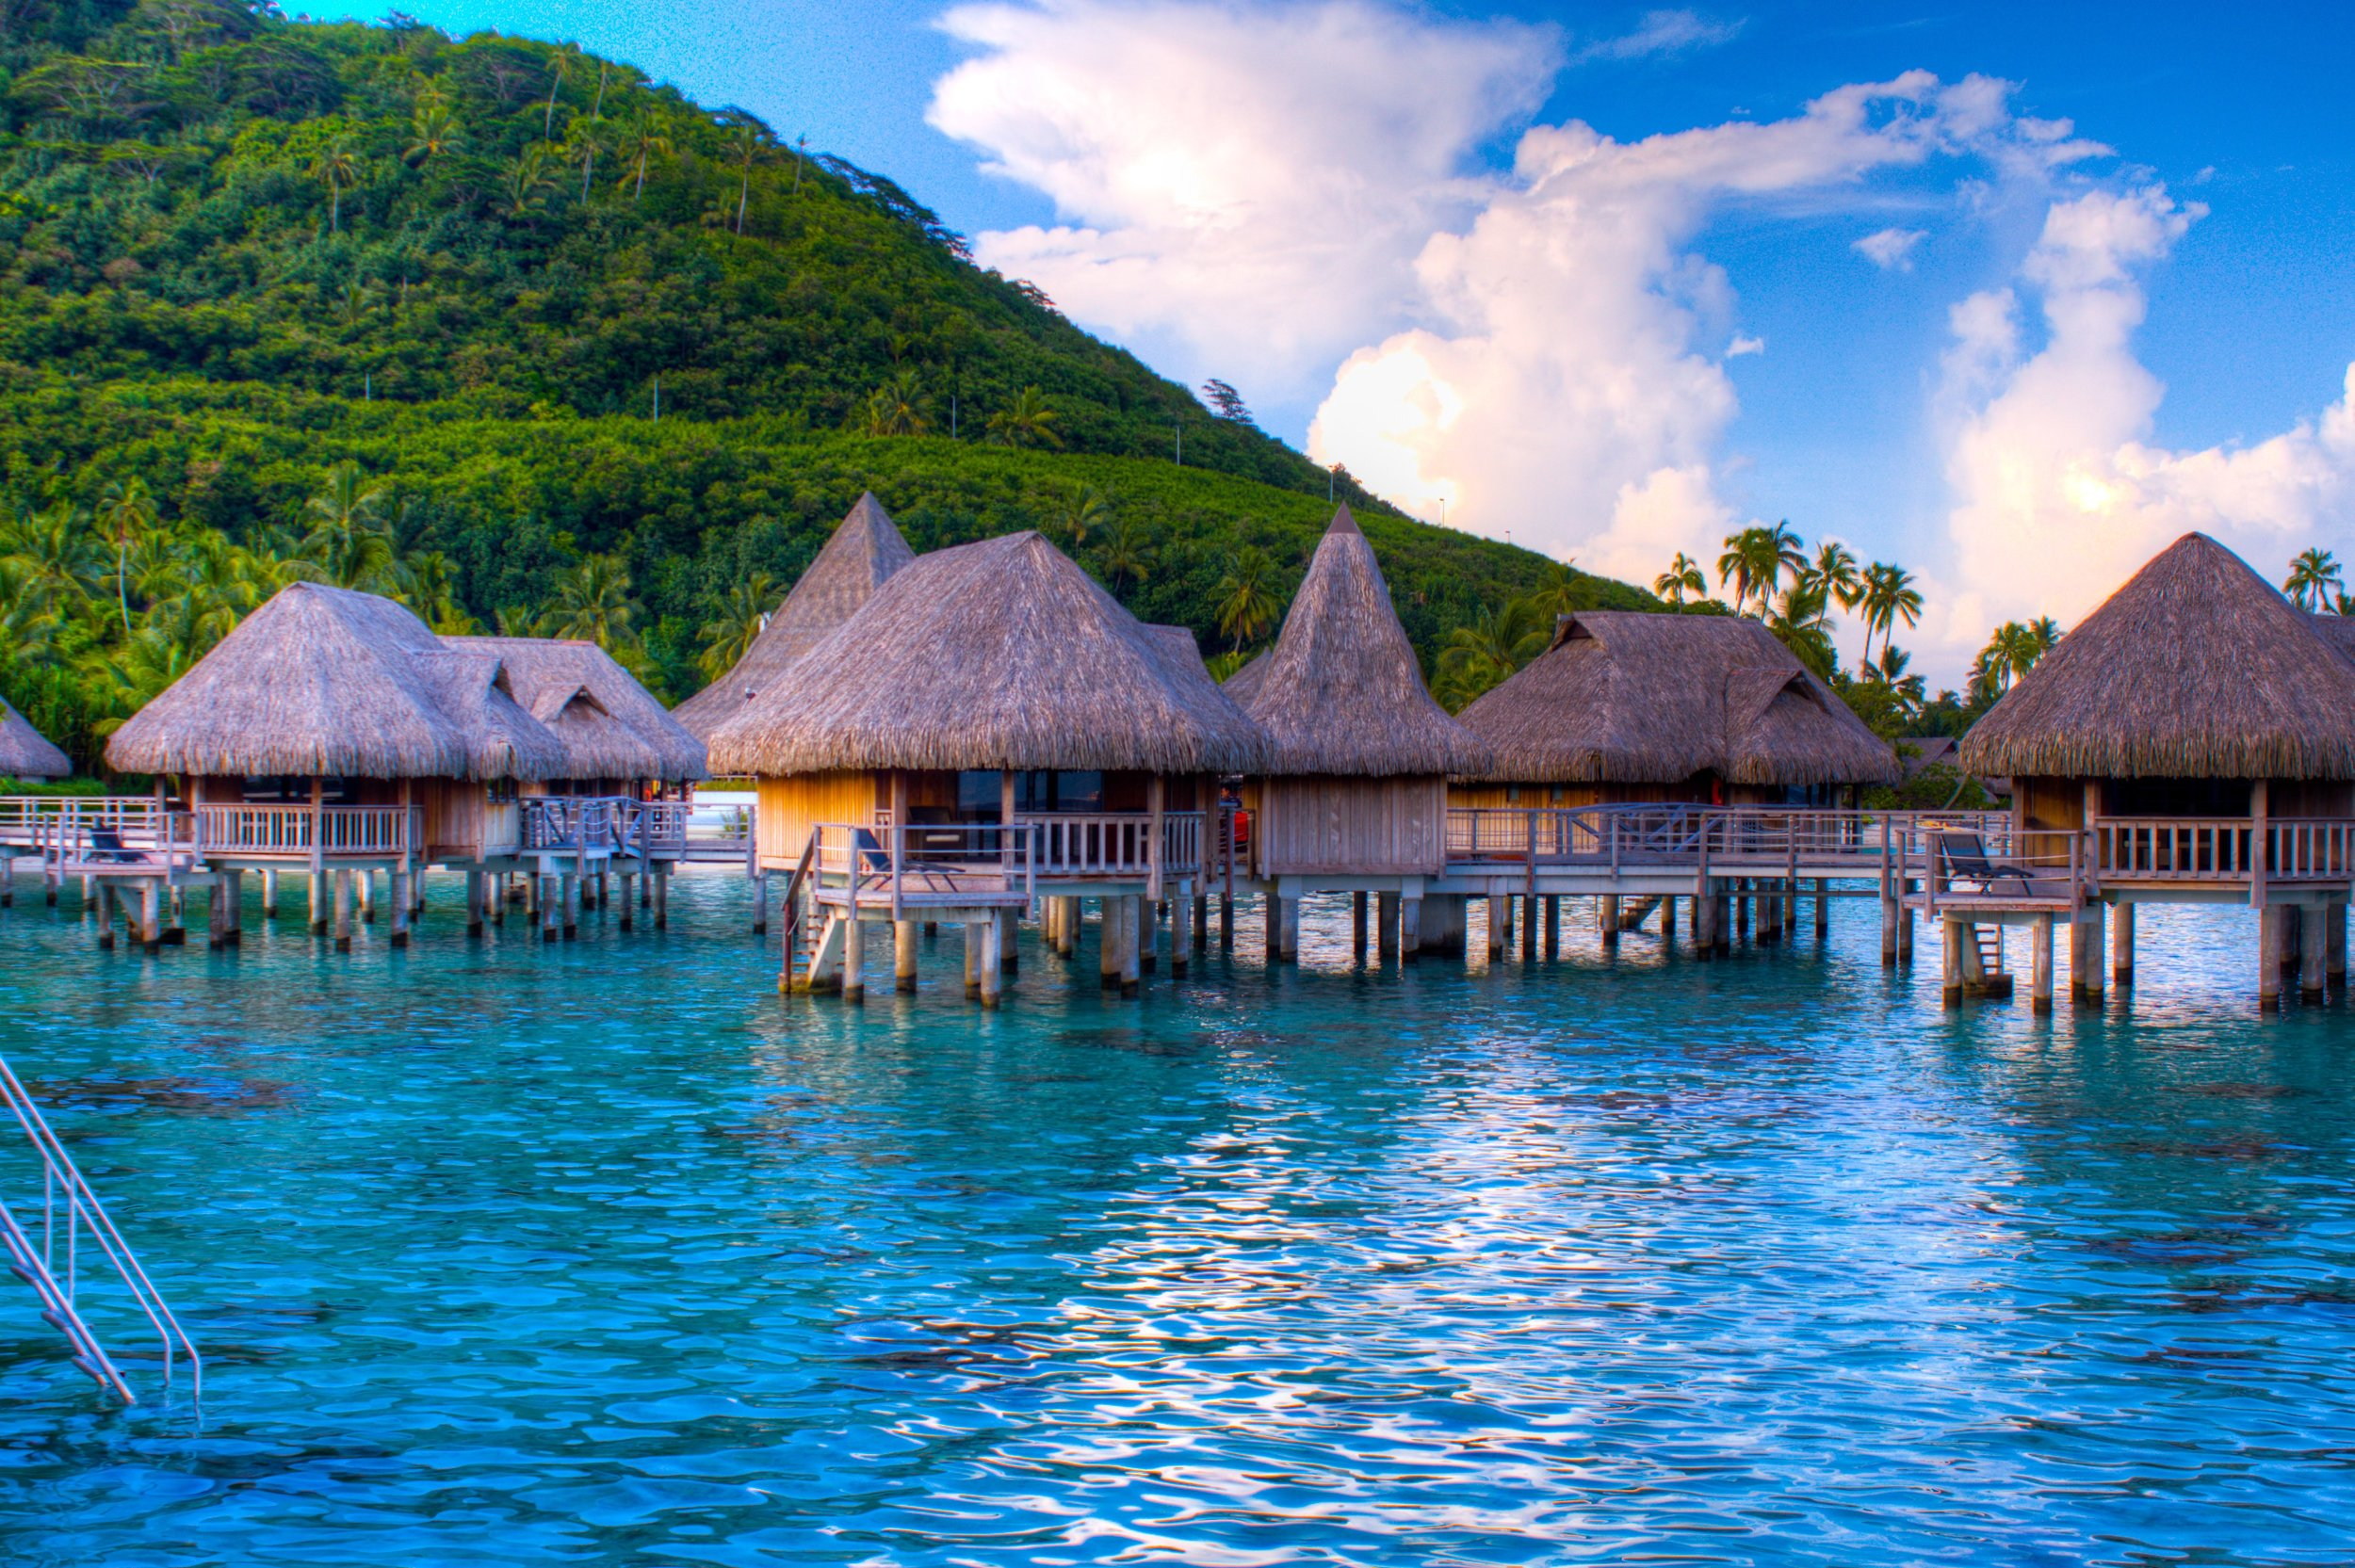 Things to do in Paradise - Swimming to Buggy rides, see what we did in Moorea, French Polynesia!